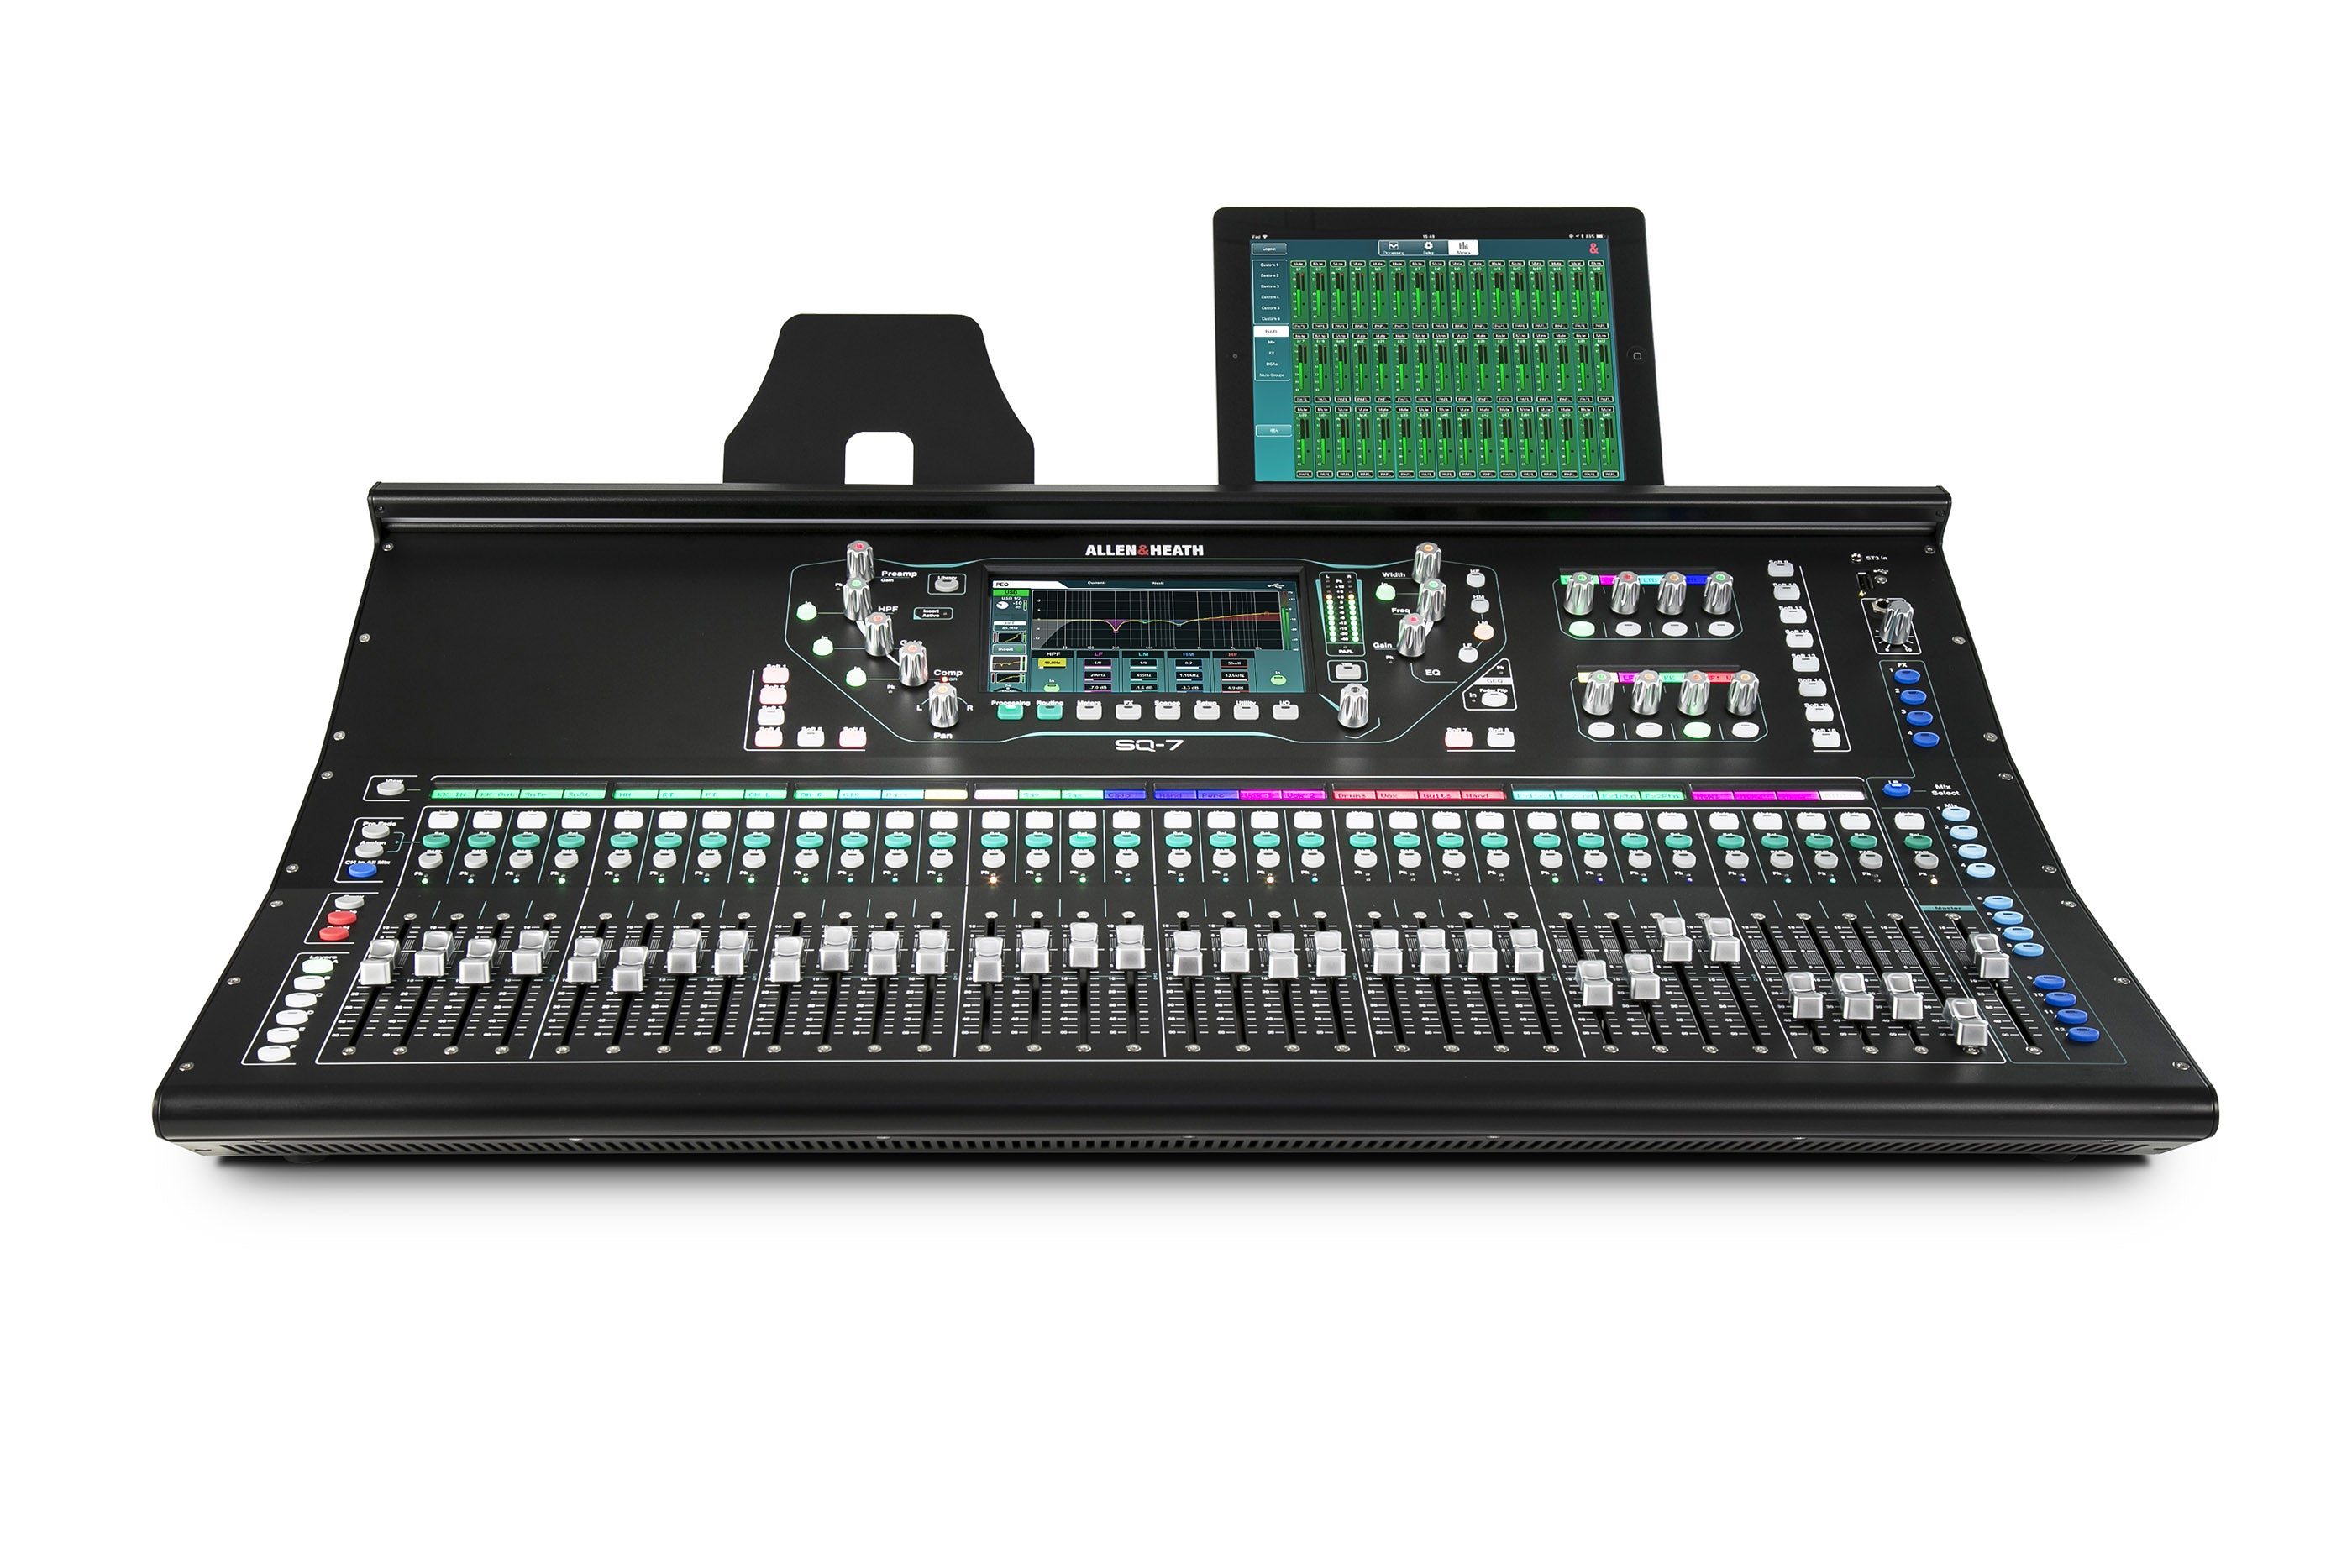 Allen & Heath Sq-7